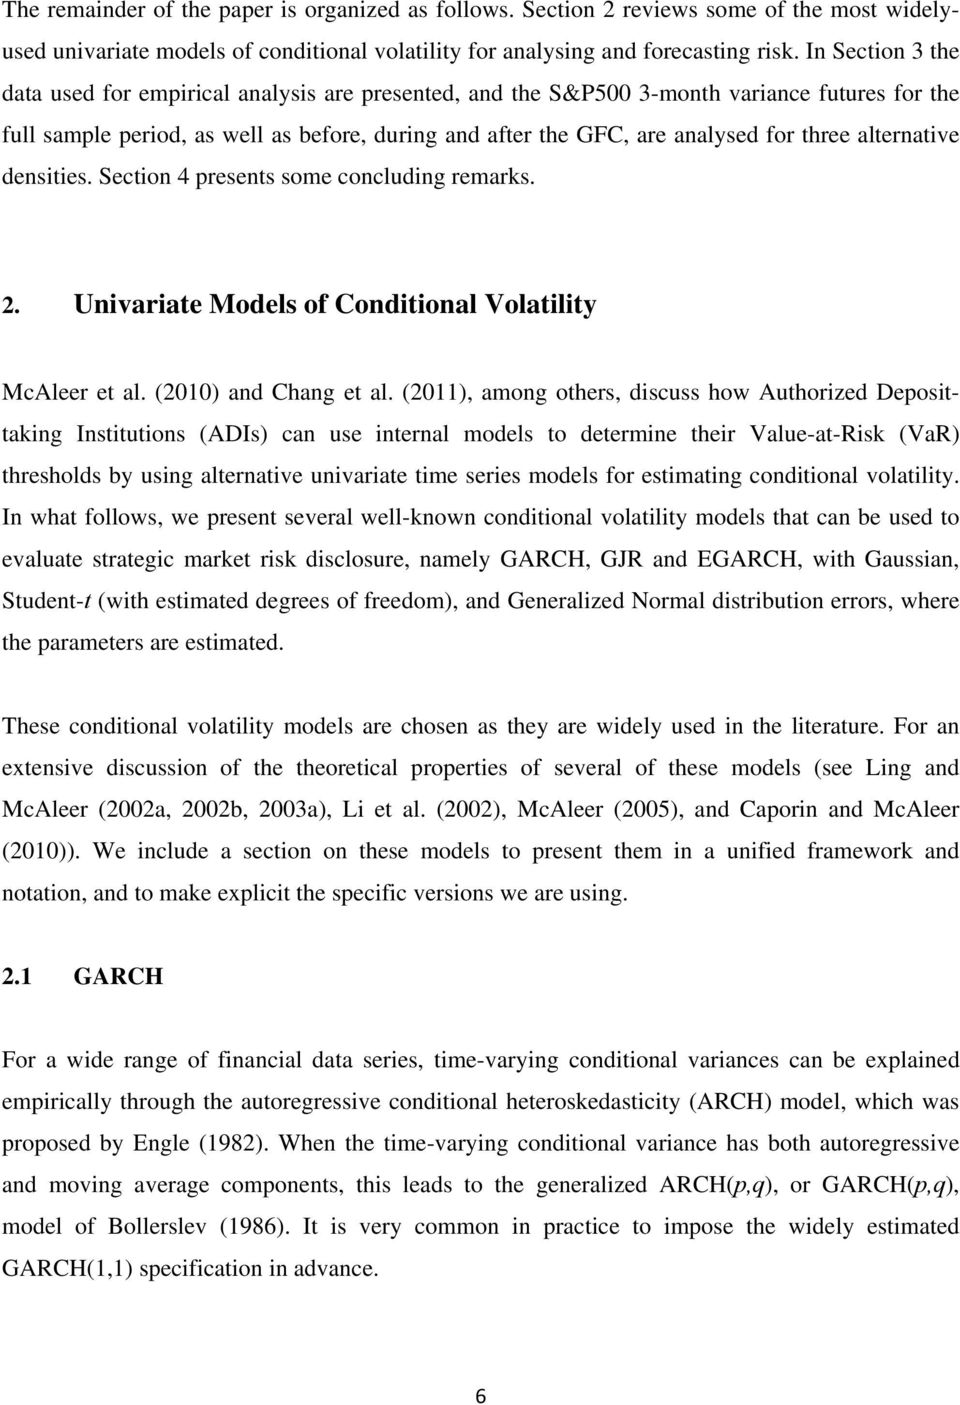 three alternative densities. Section 4 presents some concluding remarks. 2. Univariate Models of Conditional Volatility McAleer et al. (2010) and Chang et al.